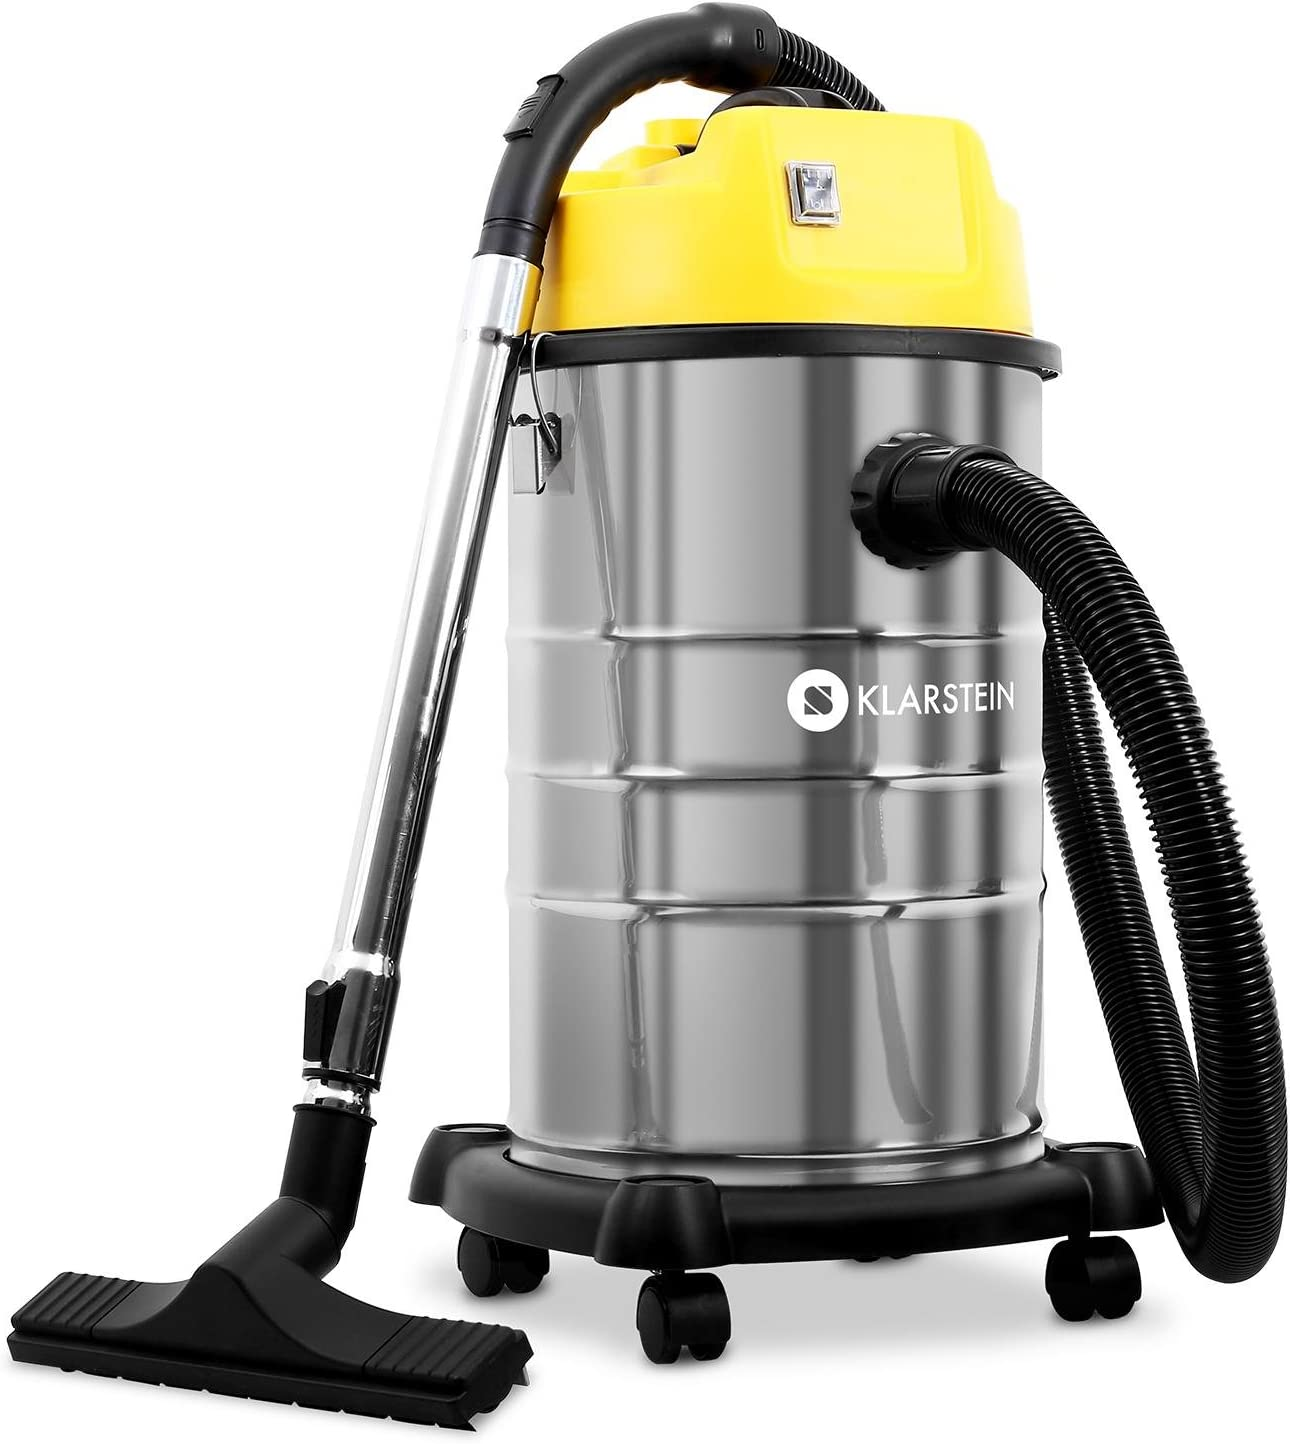 Klarstein IVC 30 Wet & Dry Vacuum Cleaner 30 l, 1800W, Double Wheel Motor, Bagless, 8 m Cable, Stainless Steel Tank, Blowing Function, Integrated